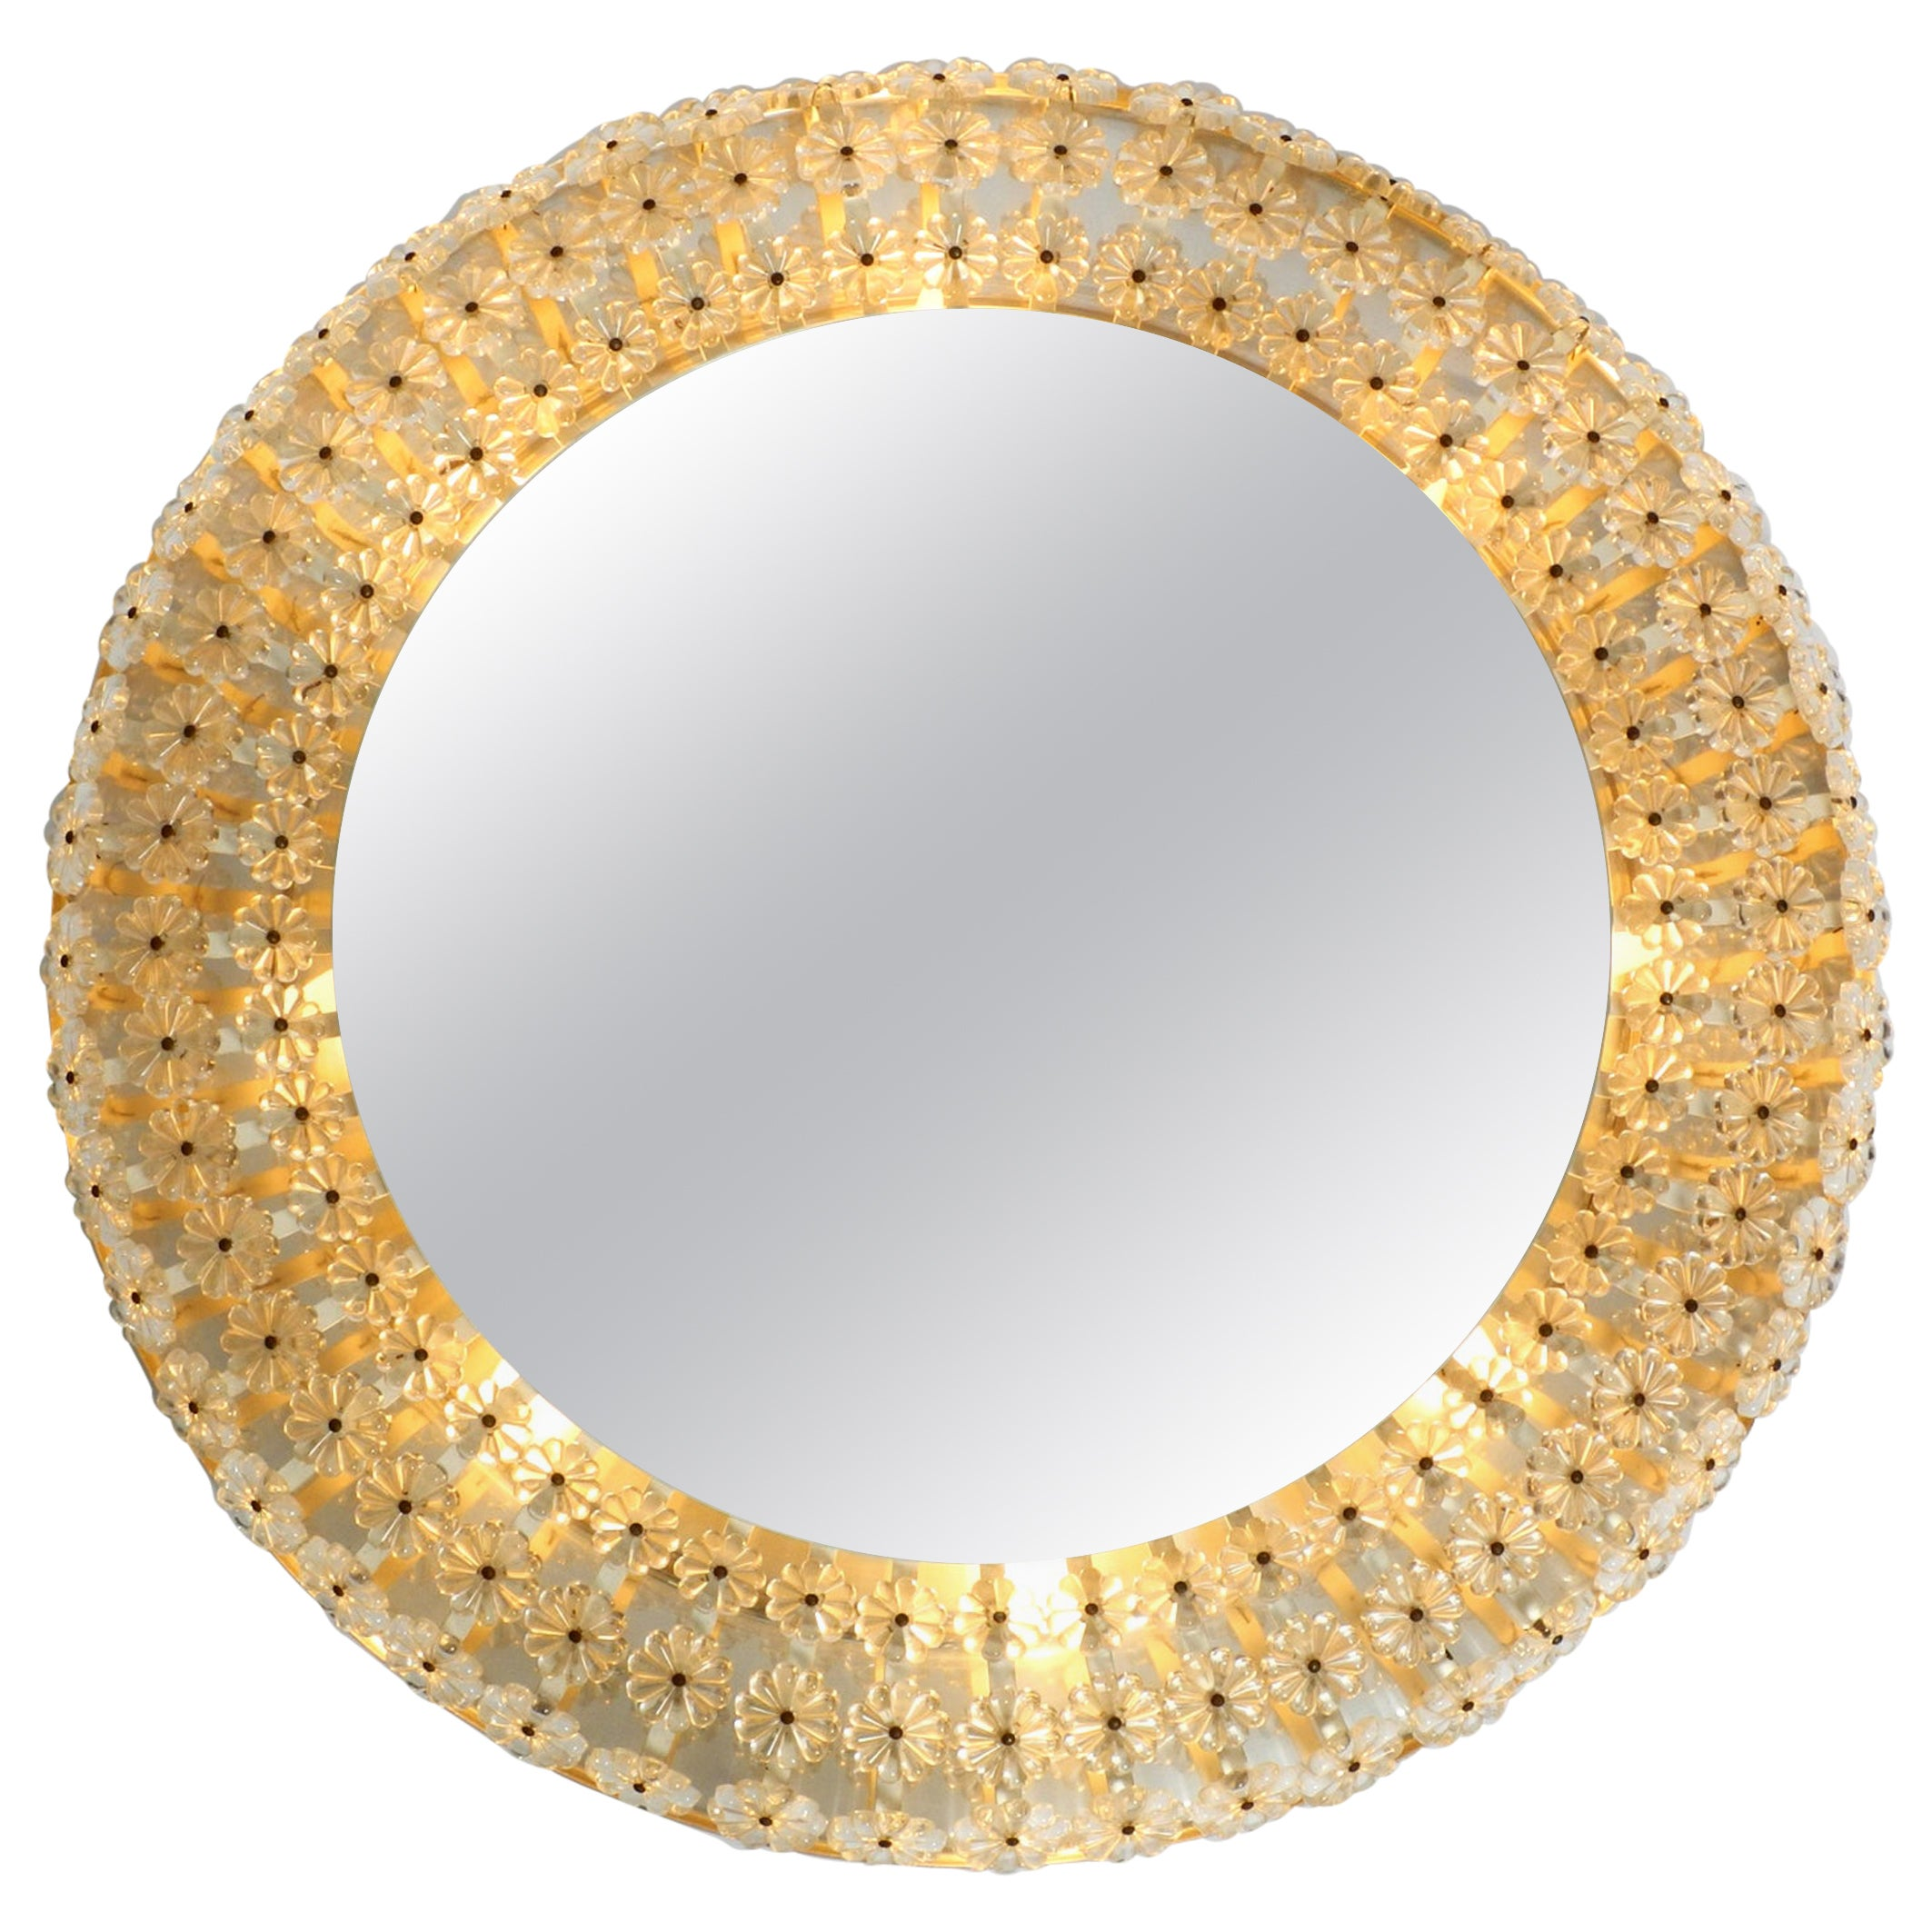 XXL Midcentury Wall Mirror Illuminated with Real Glass Stones by Schöninger